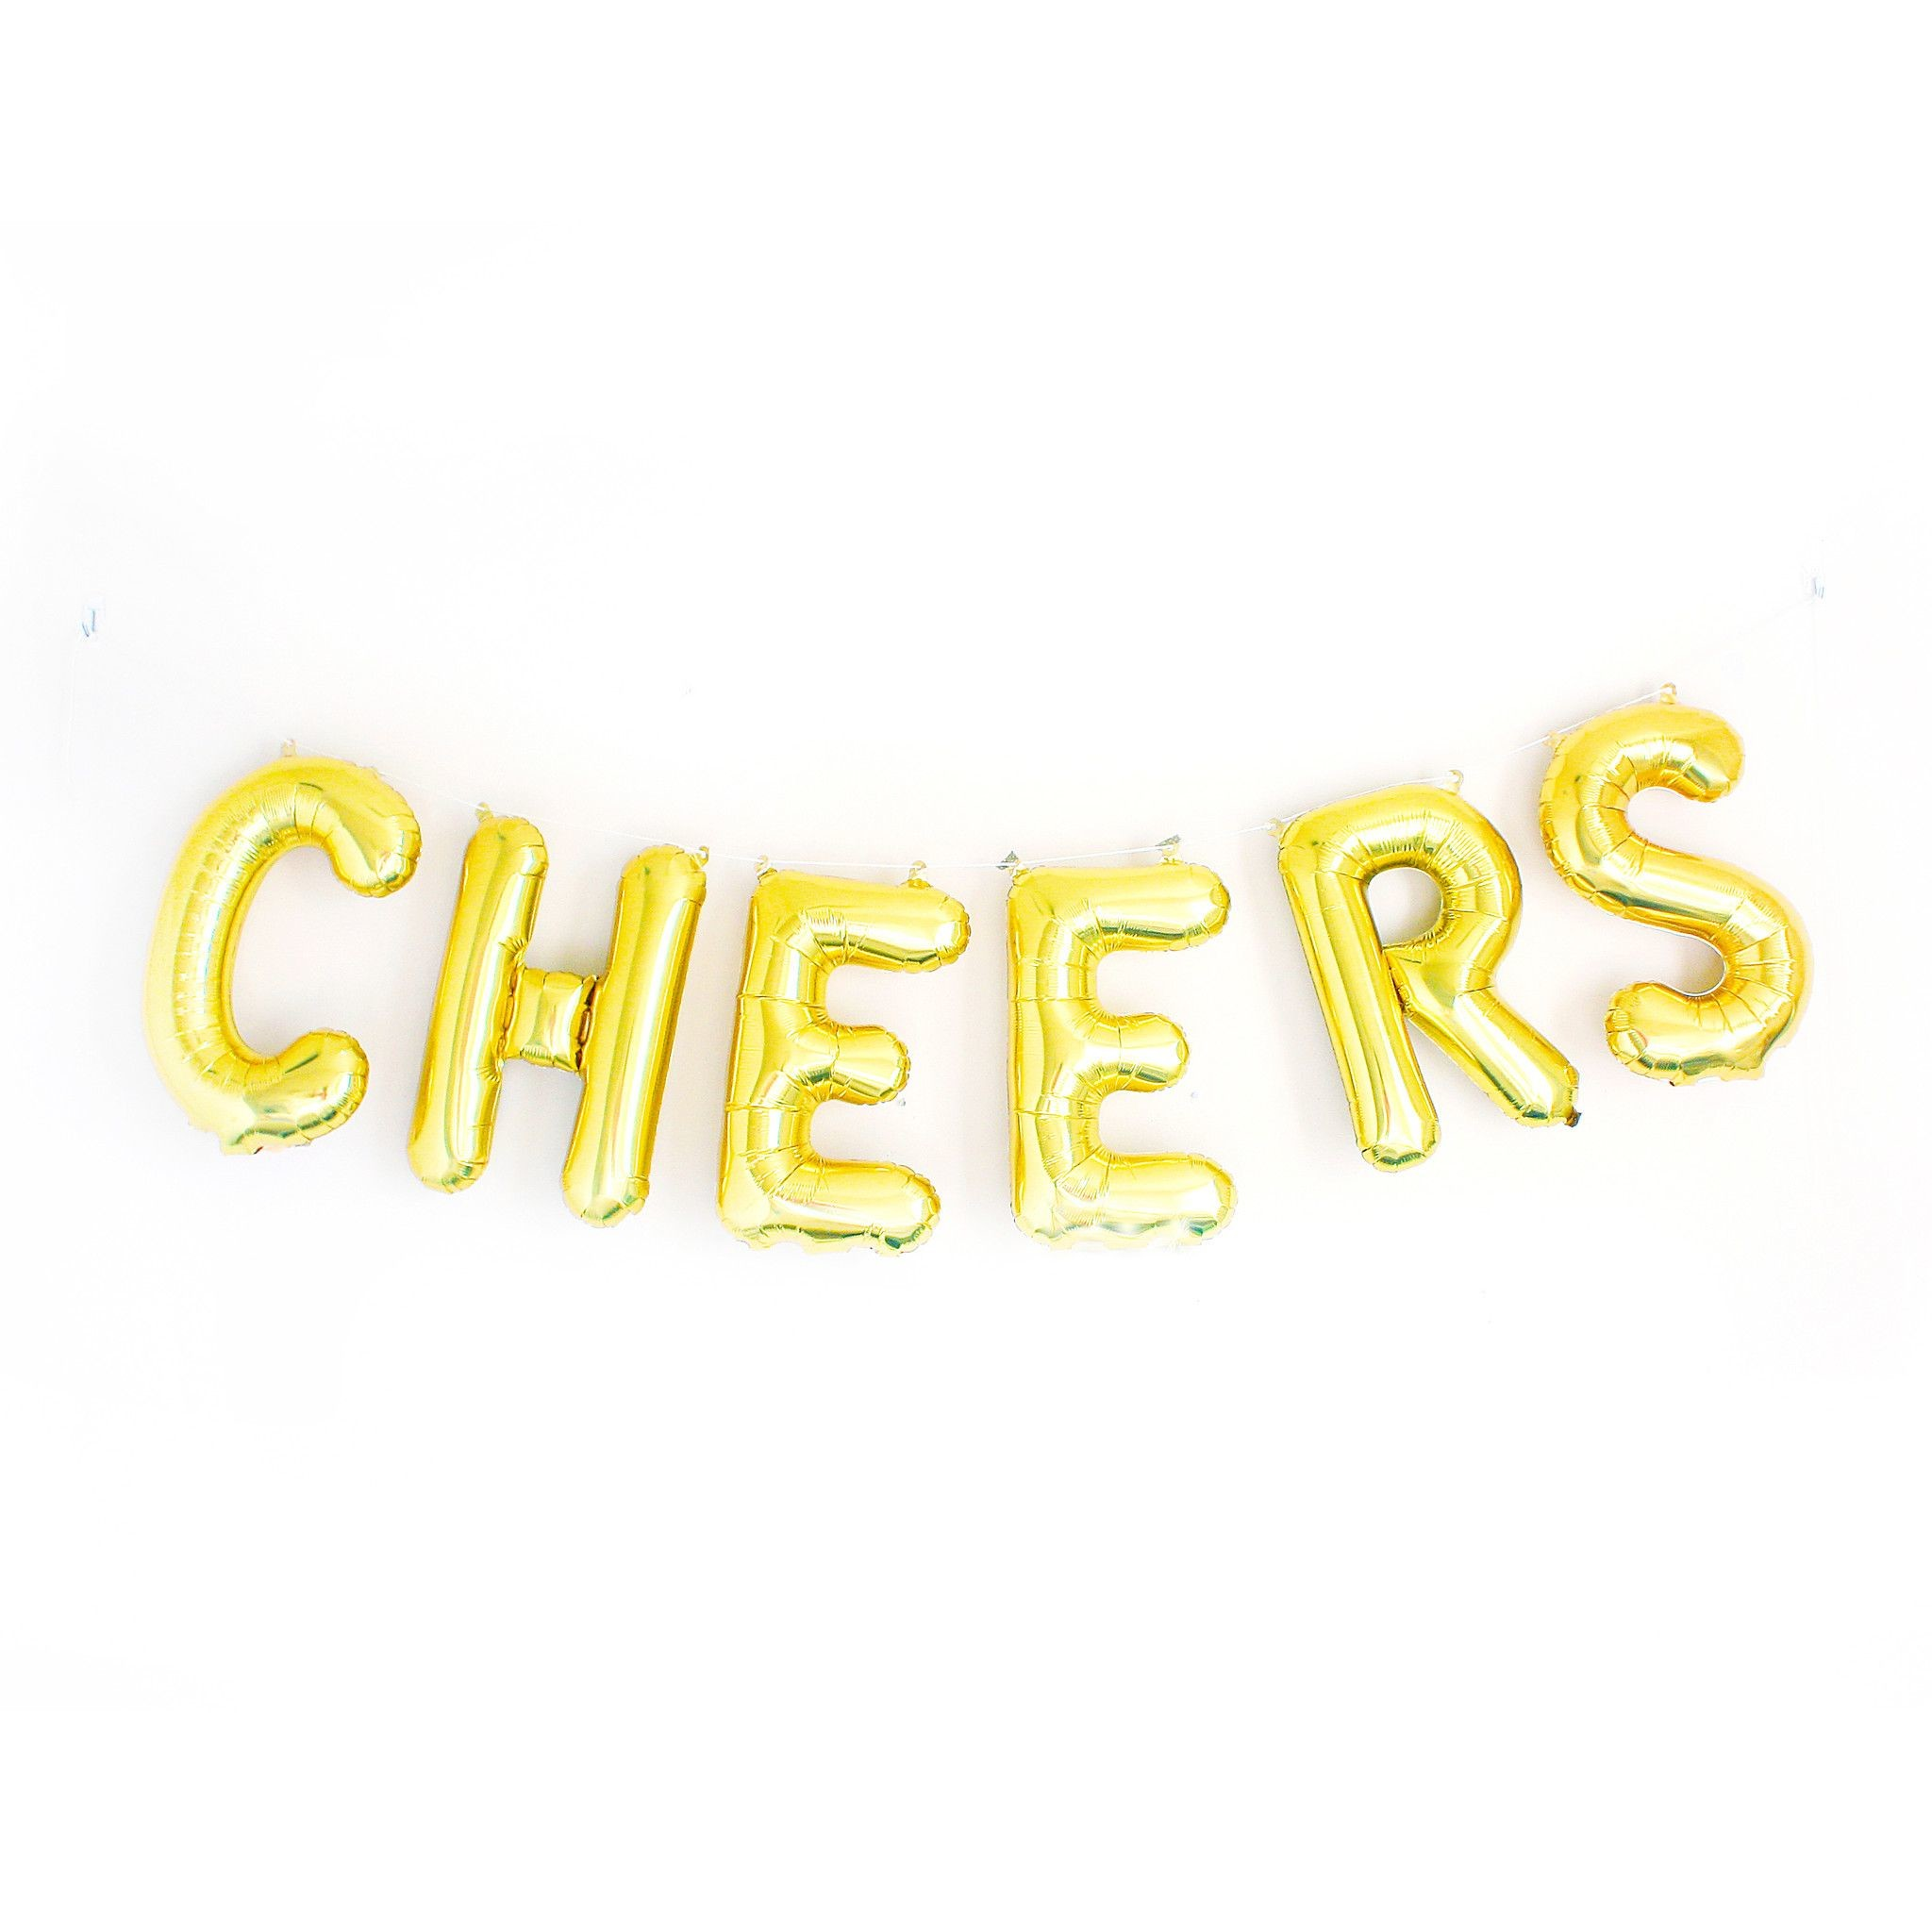 2048x2048 These balloons are so cute! They spell out the word cheers! It would be